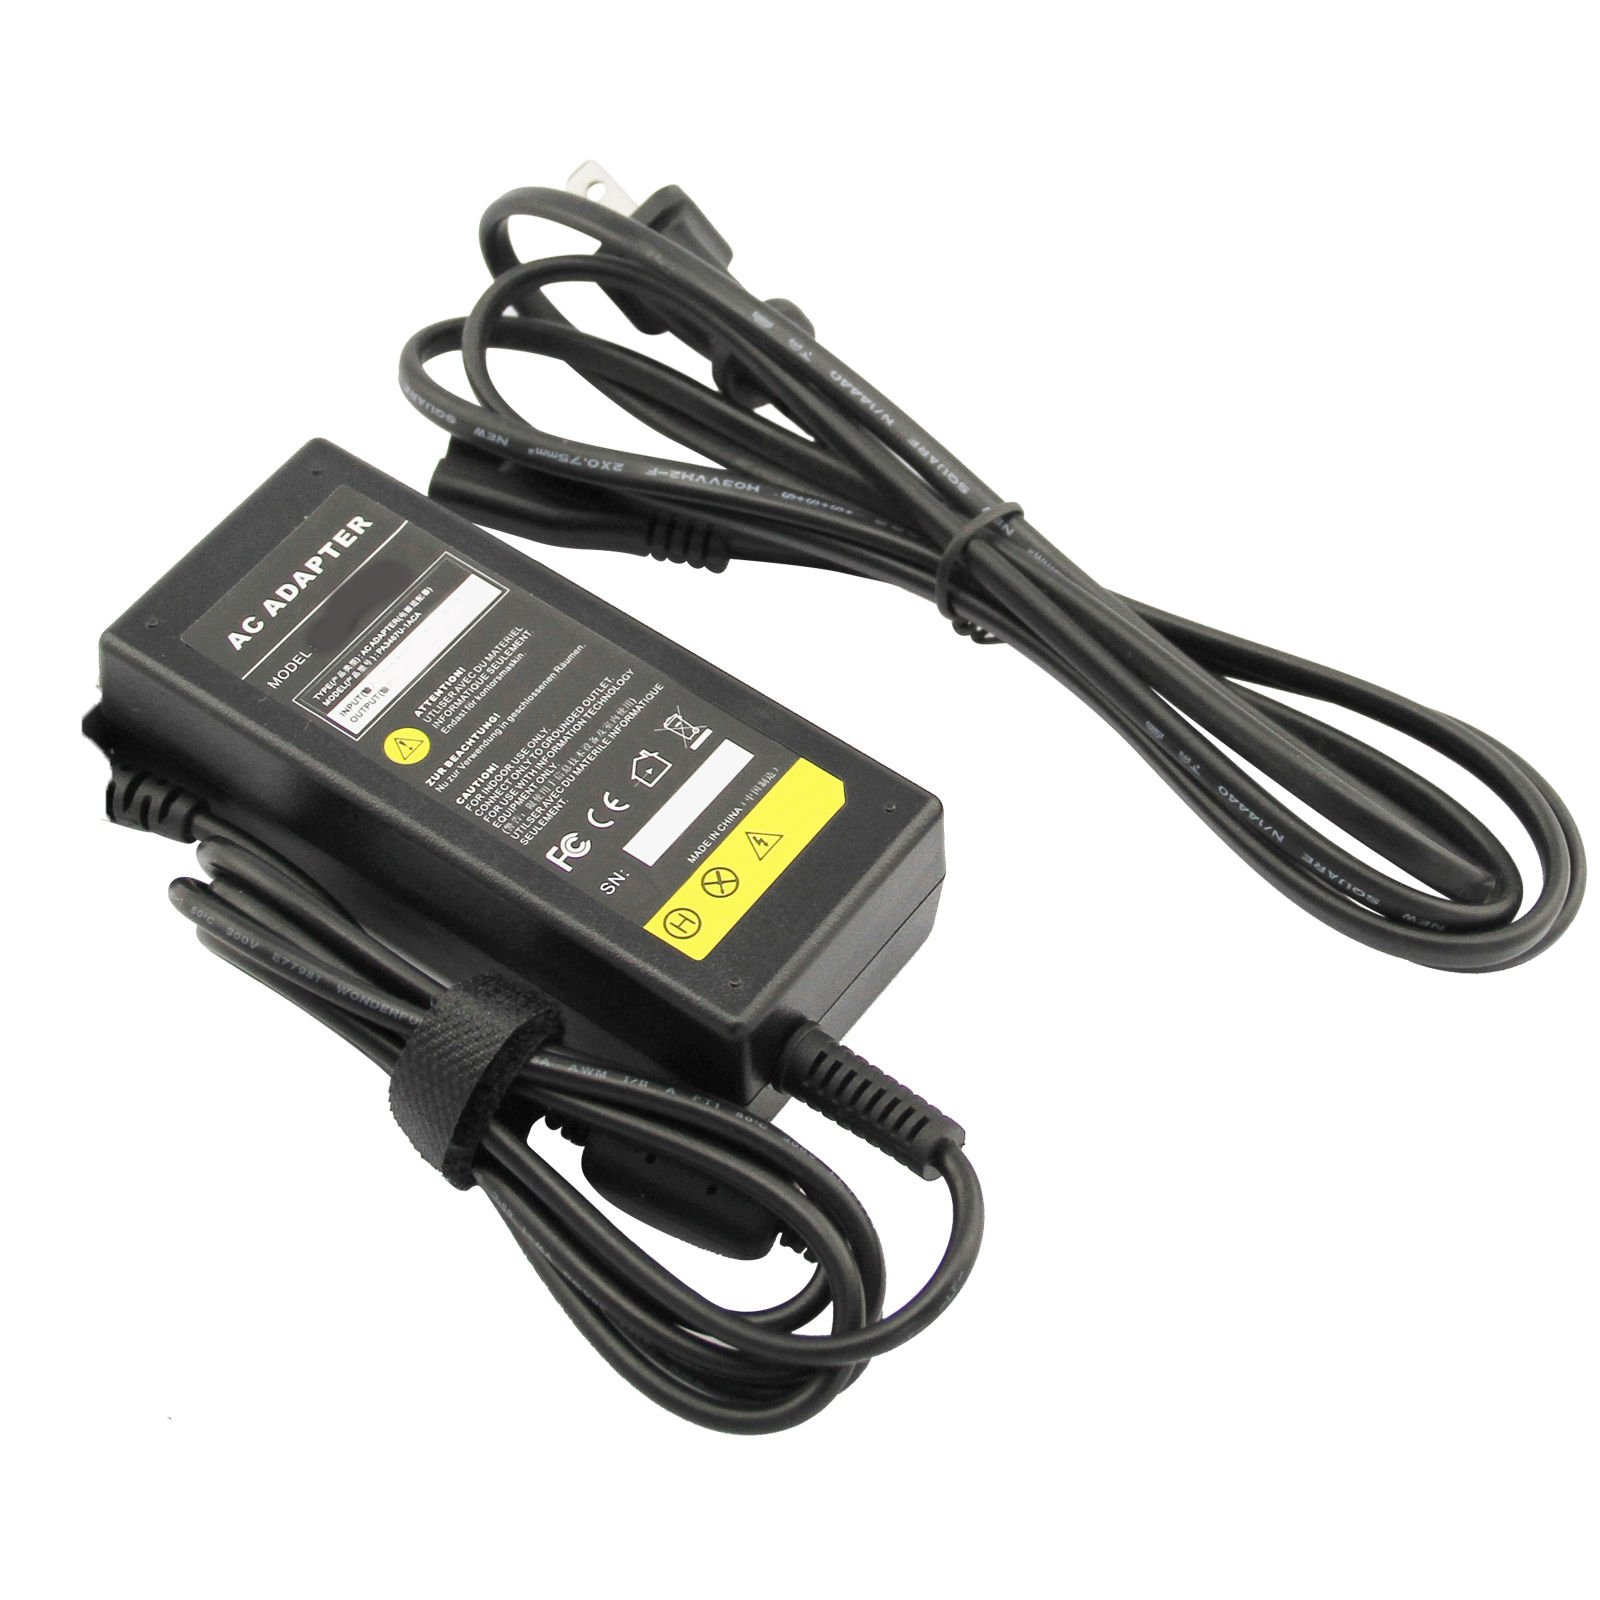 AC Adapter Wall Charger for Toshiba Satellite L855d-s5220 L875d-s7210 L875d-s7232 P845-s4200 P875-s7200 S855-s5254 S855-s5268 S855d-s5253 S875-s7242 ; Portege R935-p326 Laptop Notebook PC US Power Supply